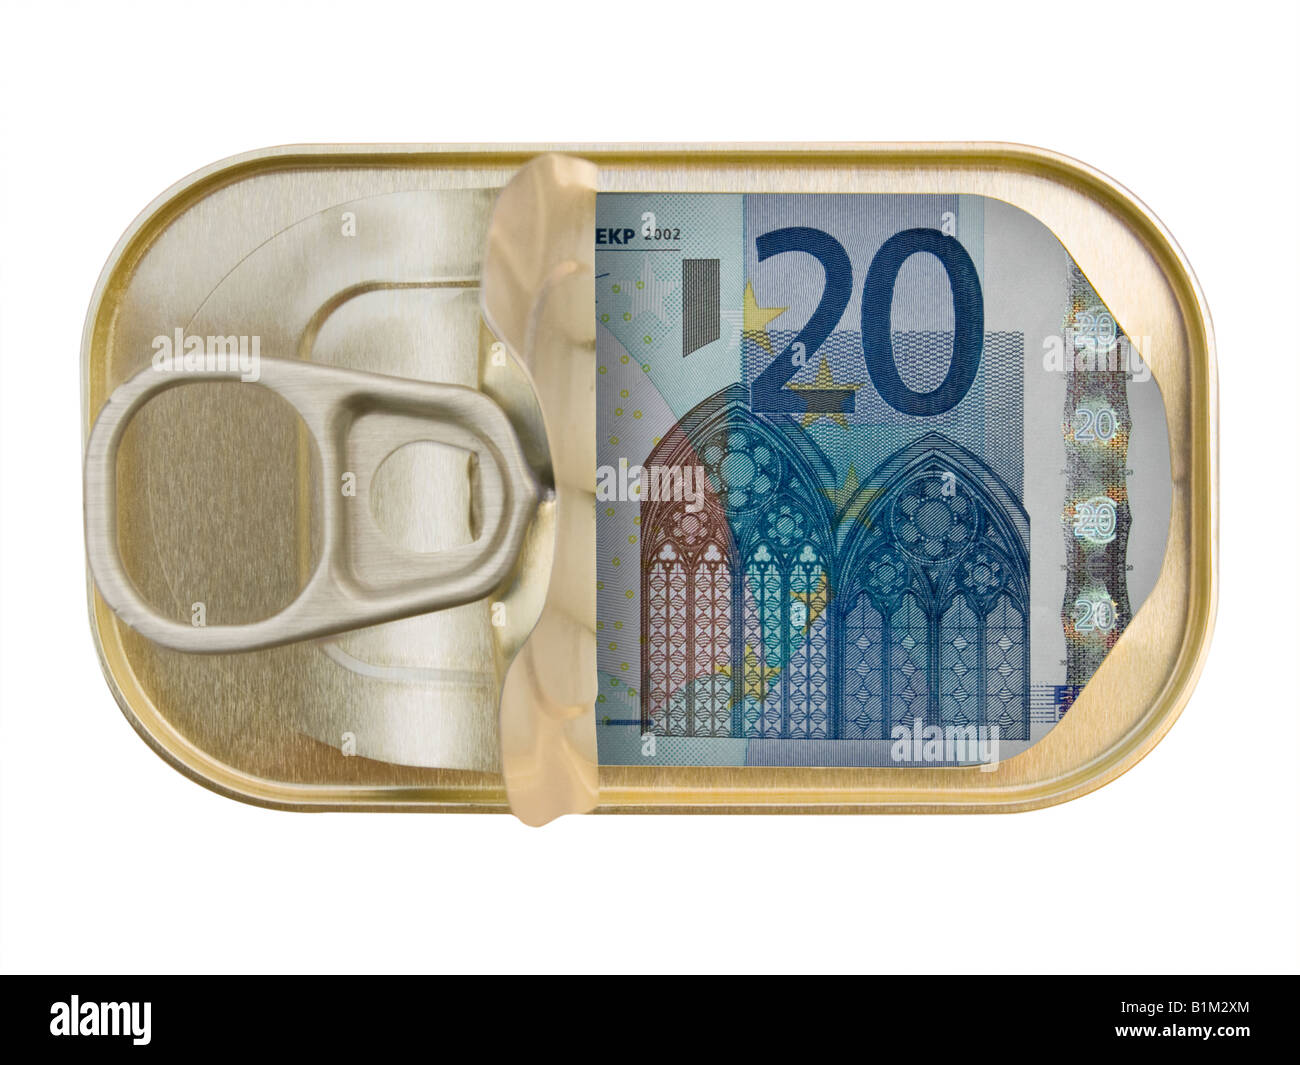 Plan view of a Ring Pull Tin containing 20 Euros on white background - Stock Image